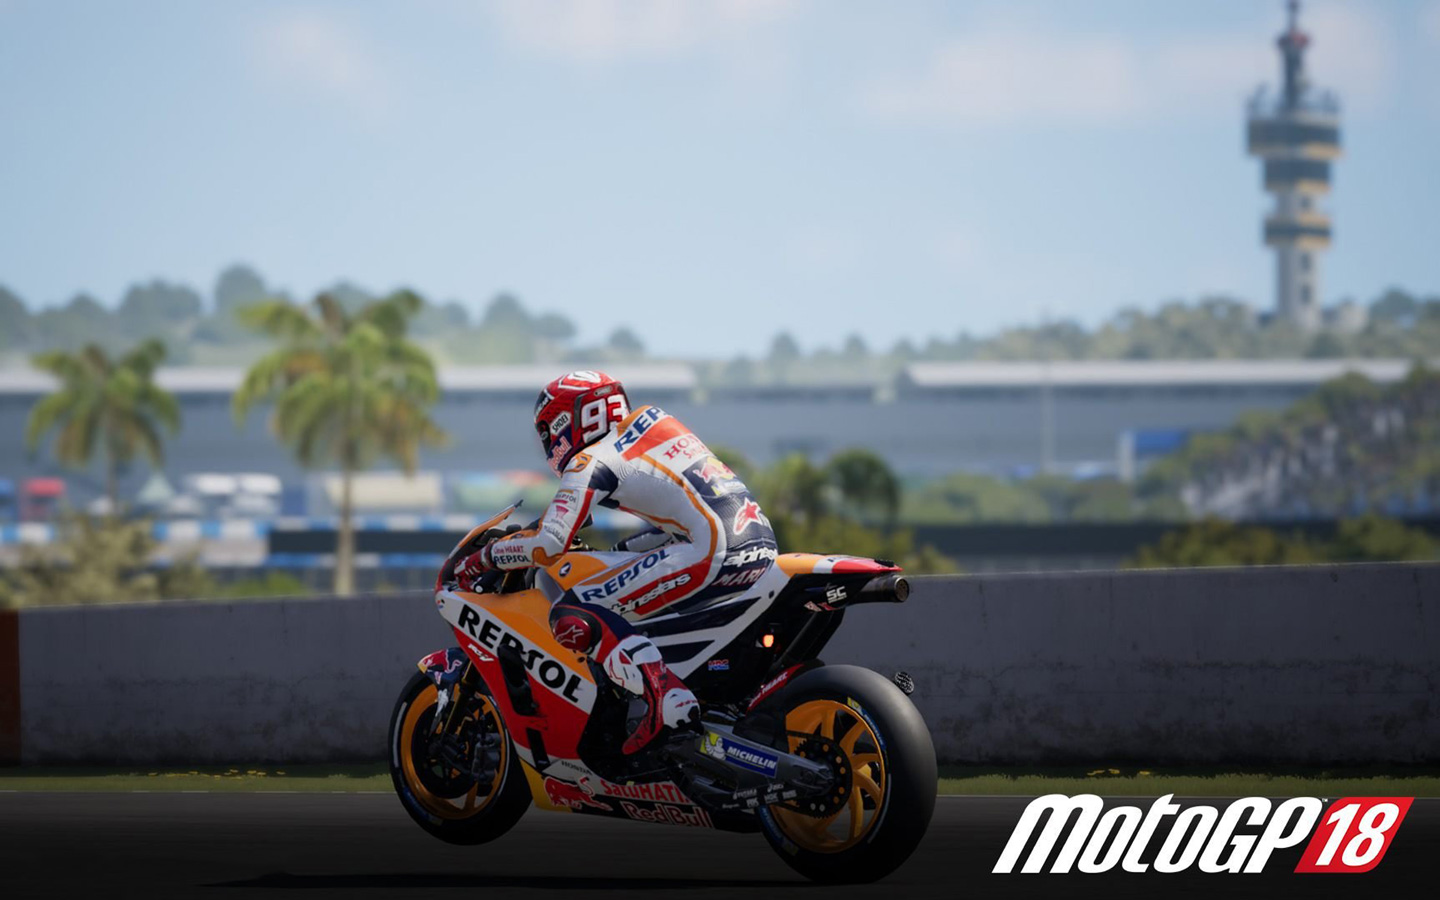 Free MotoGP 18 Wallpaper in 1440x900